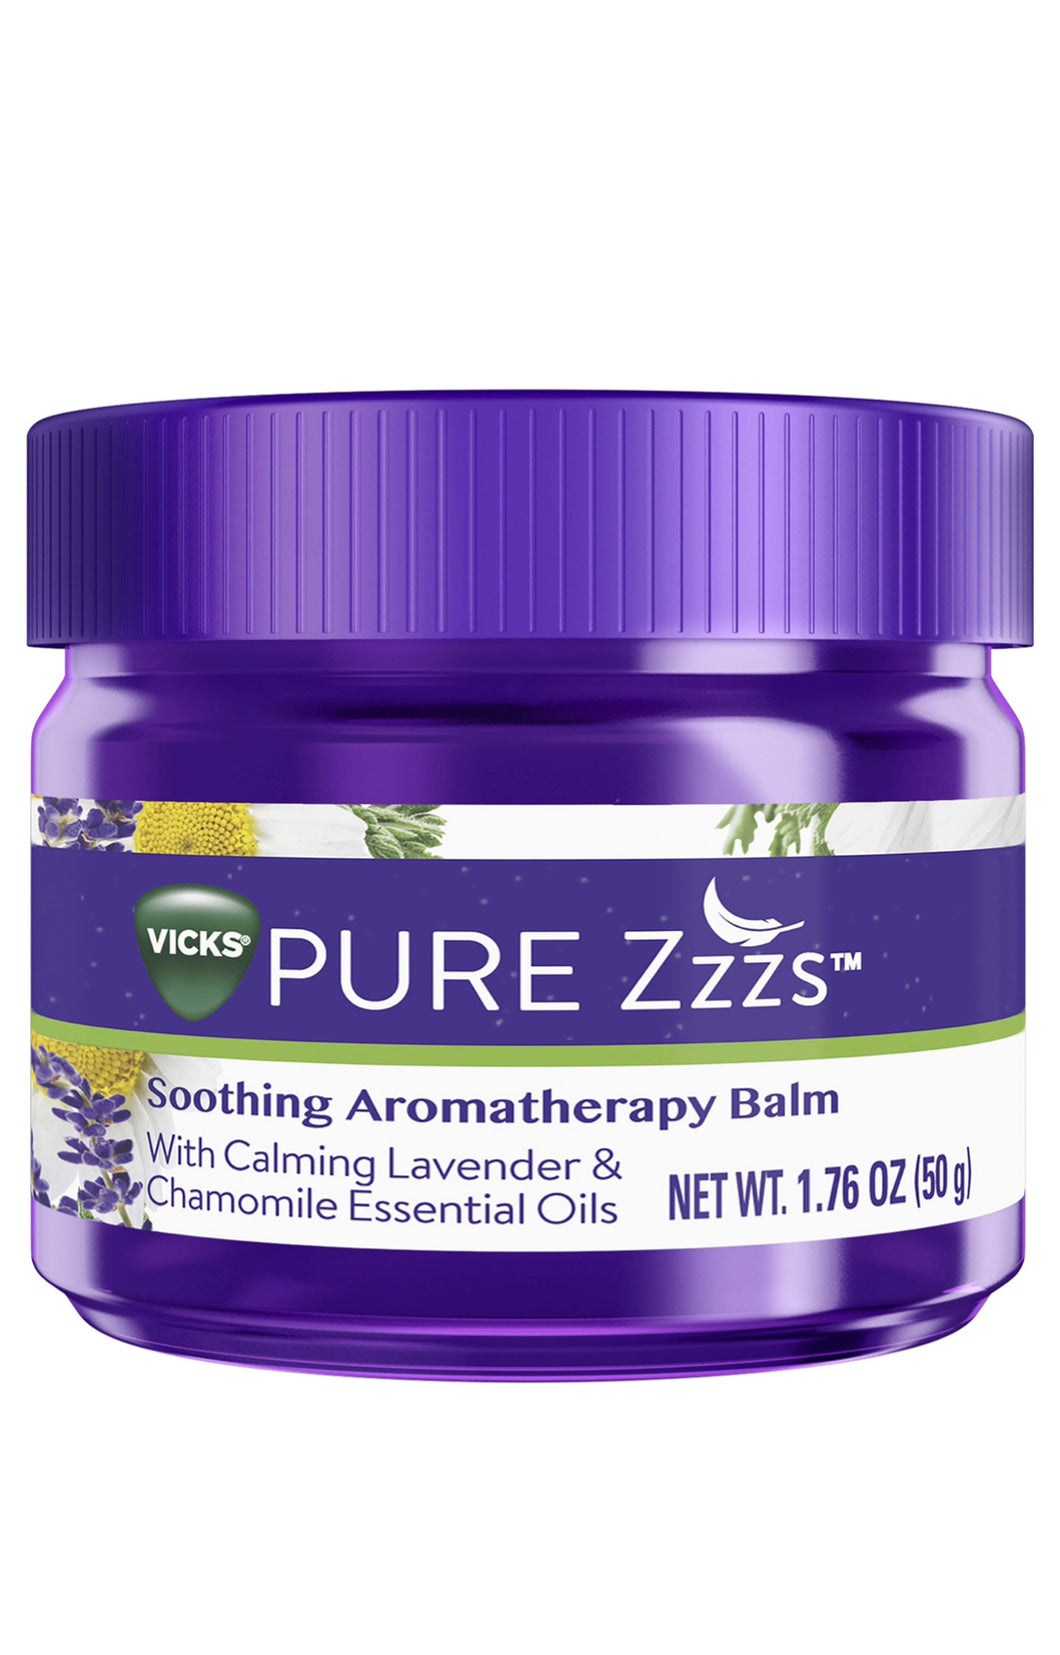 (PREORDER) Vicks PURE Zzzs Soothing Aromatherapy Balm